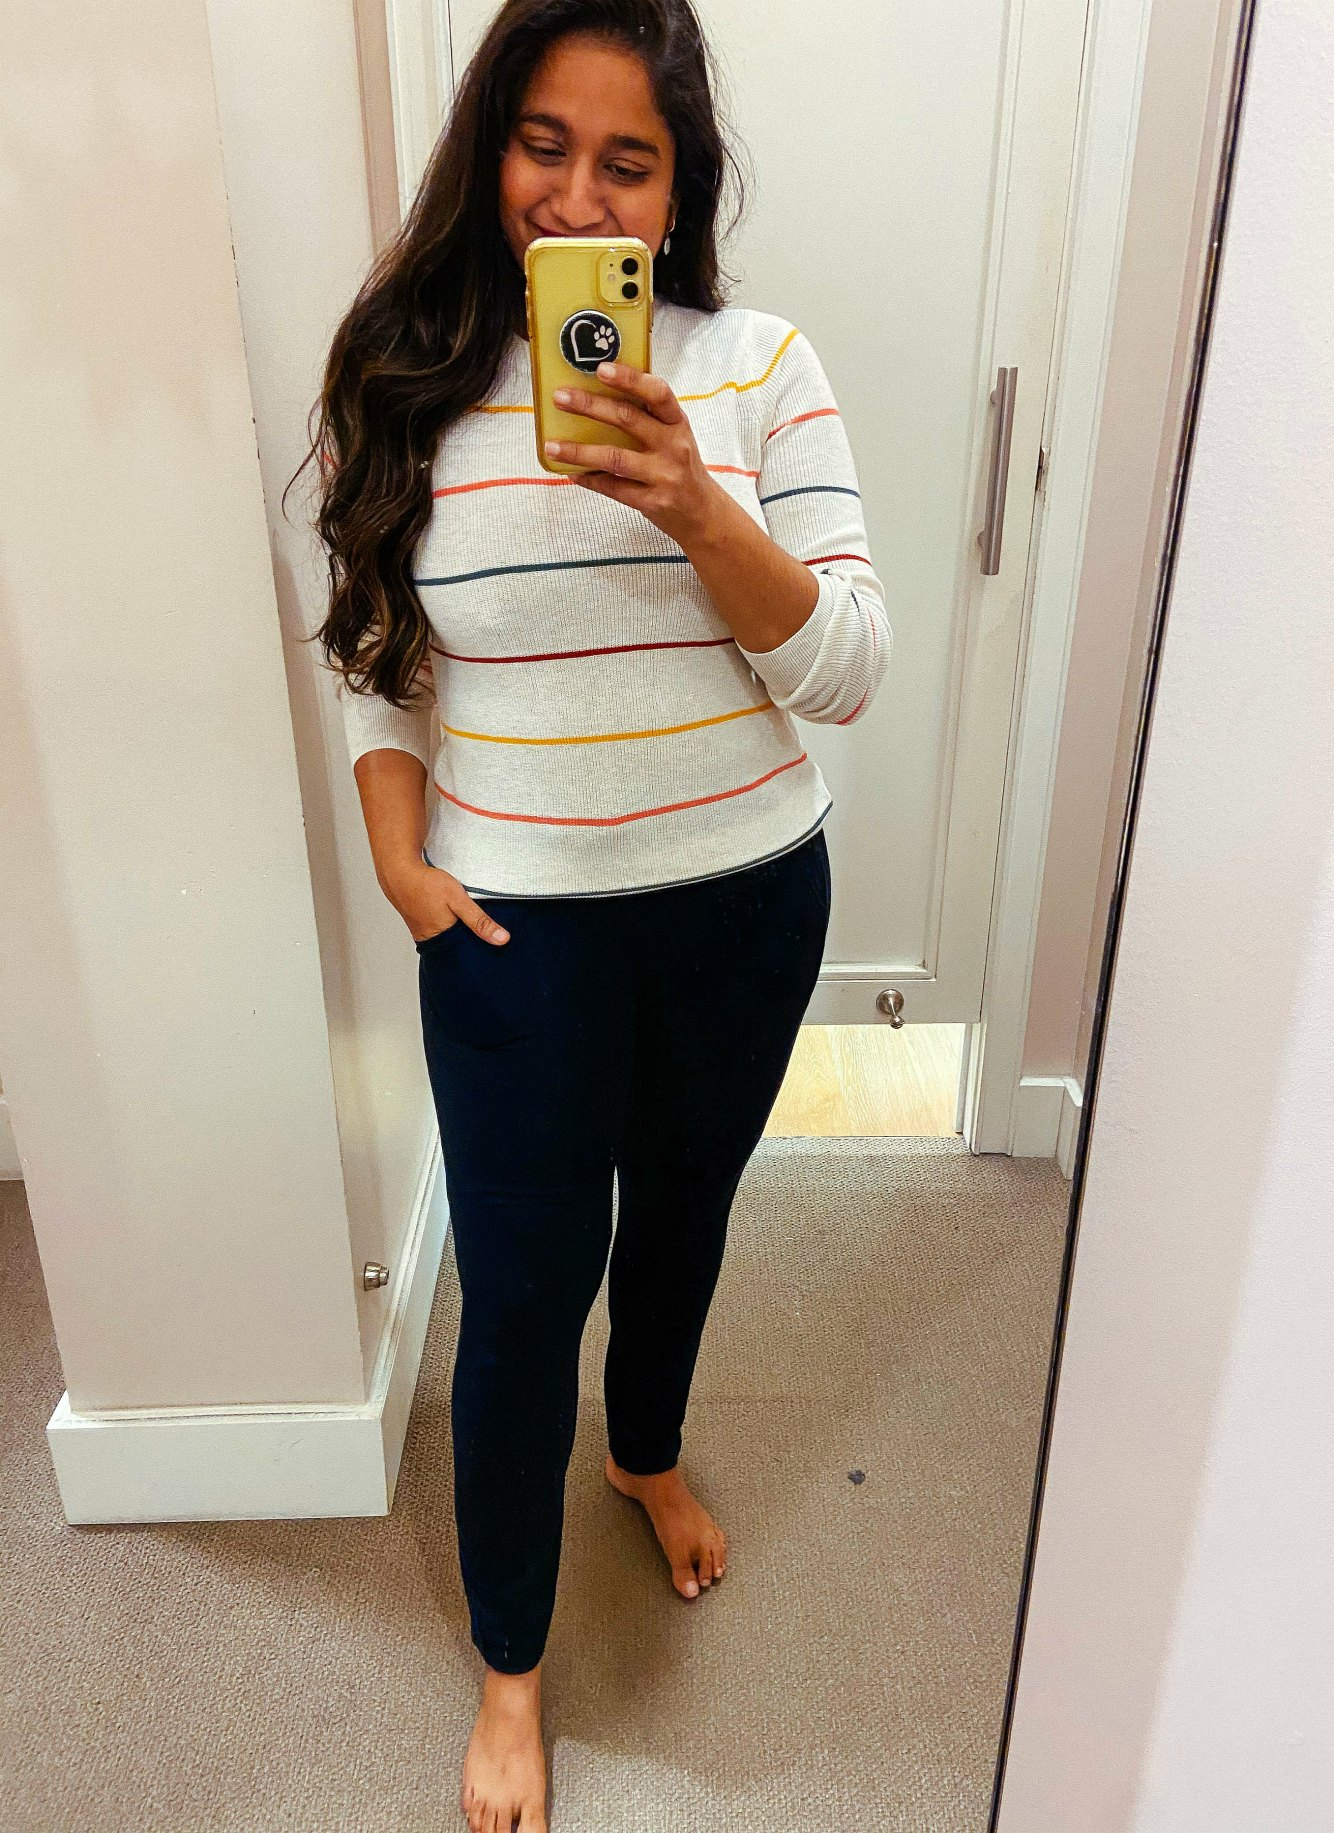 Fall WFH Outfit ideas- Wearing Lou & Grey Signature Softblend Sweatpants,Striped Modern Crew Neck Sweater | Fall Clothing by popular Maryland modest fashion blog, Dreaming Loud: image of a woman wearing a Loft Lou & Grey Signature Softblend Sweatpants, and Striped Modern Crew Neck Sweater.